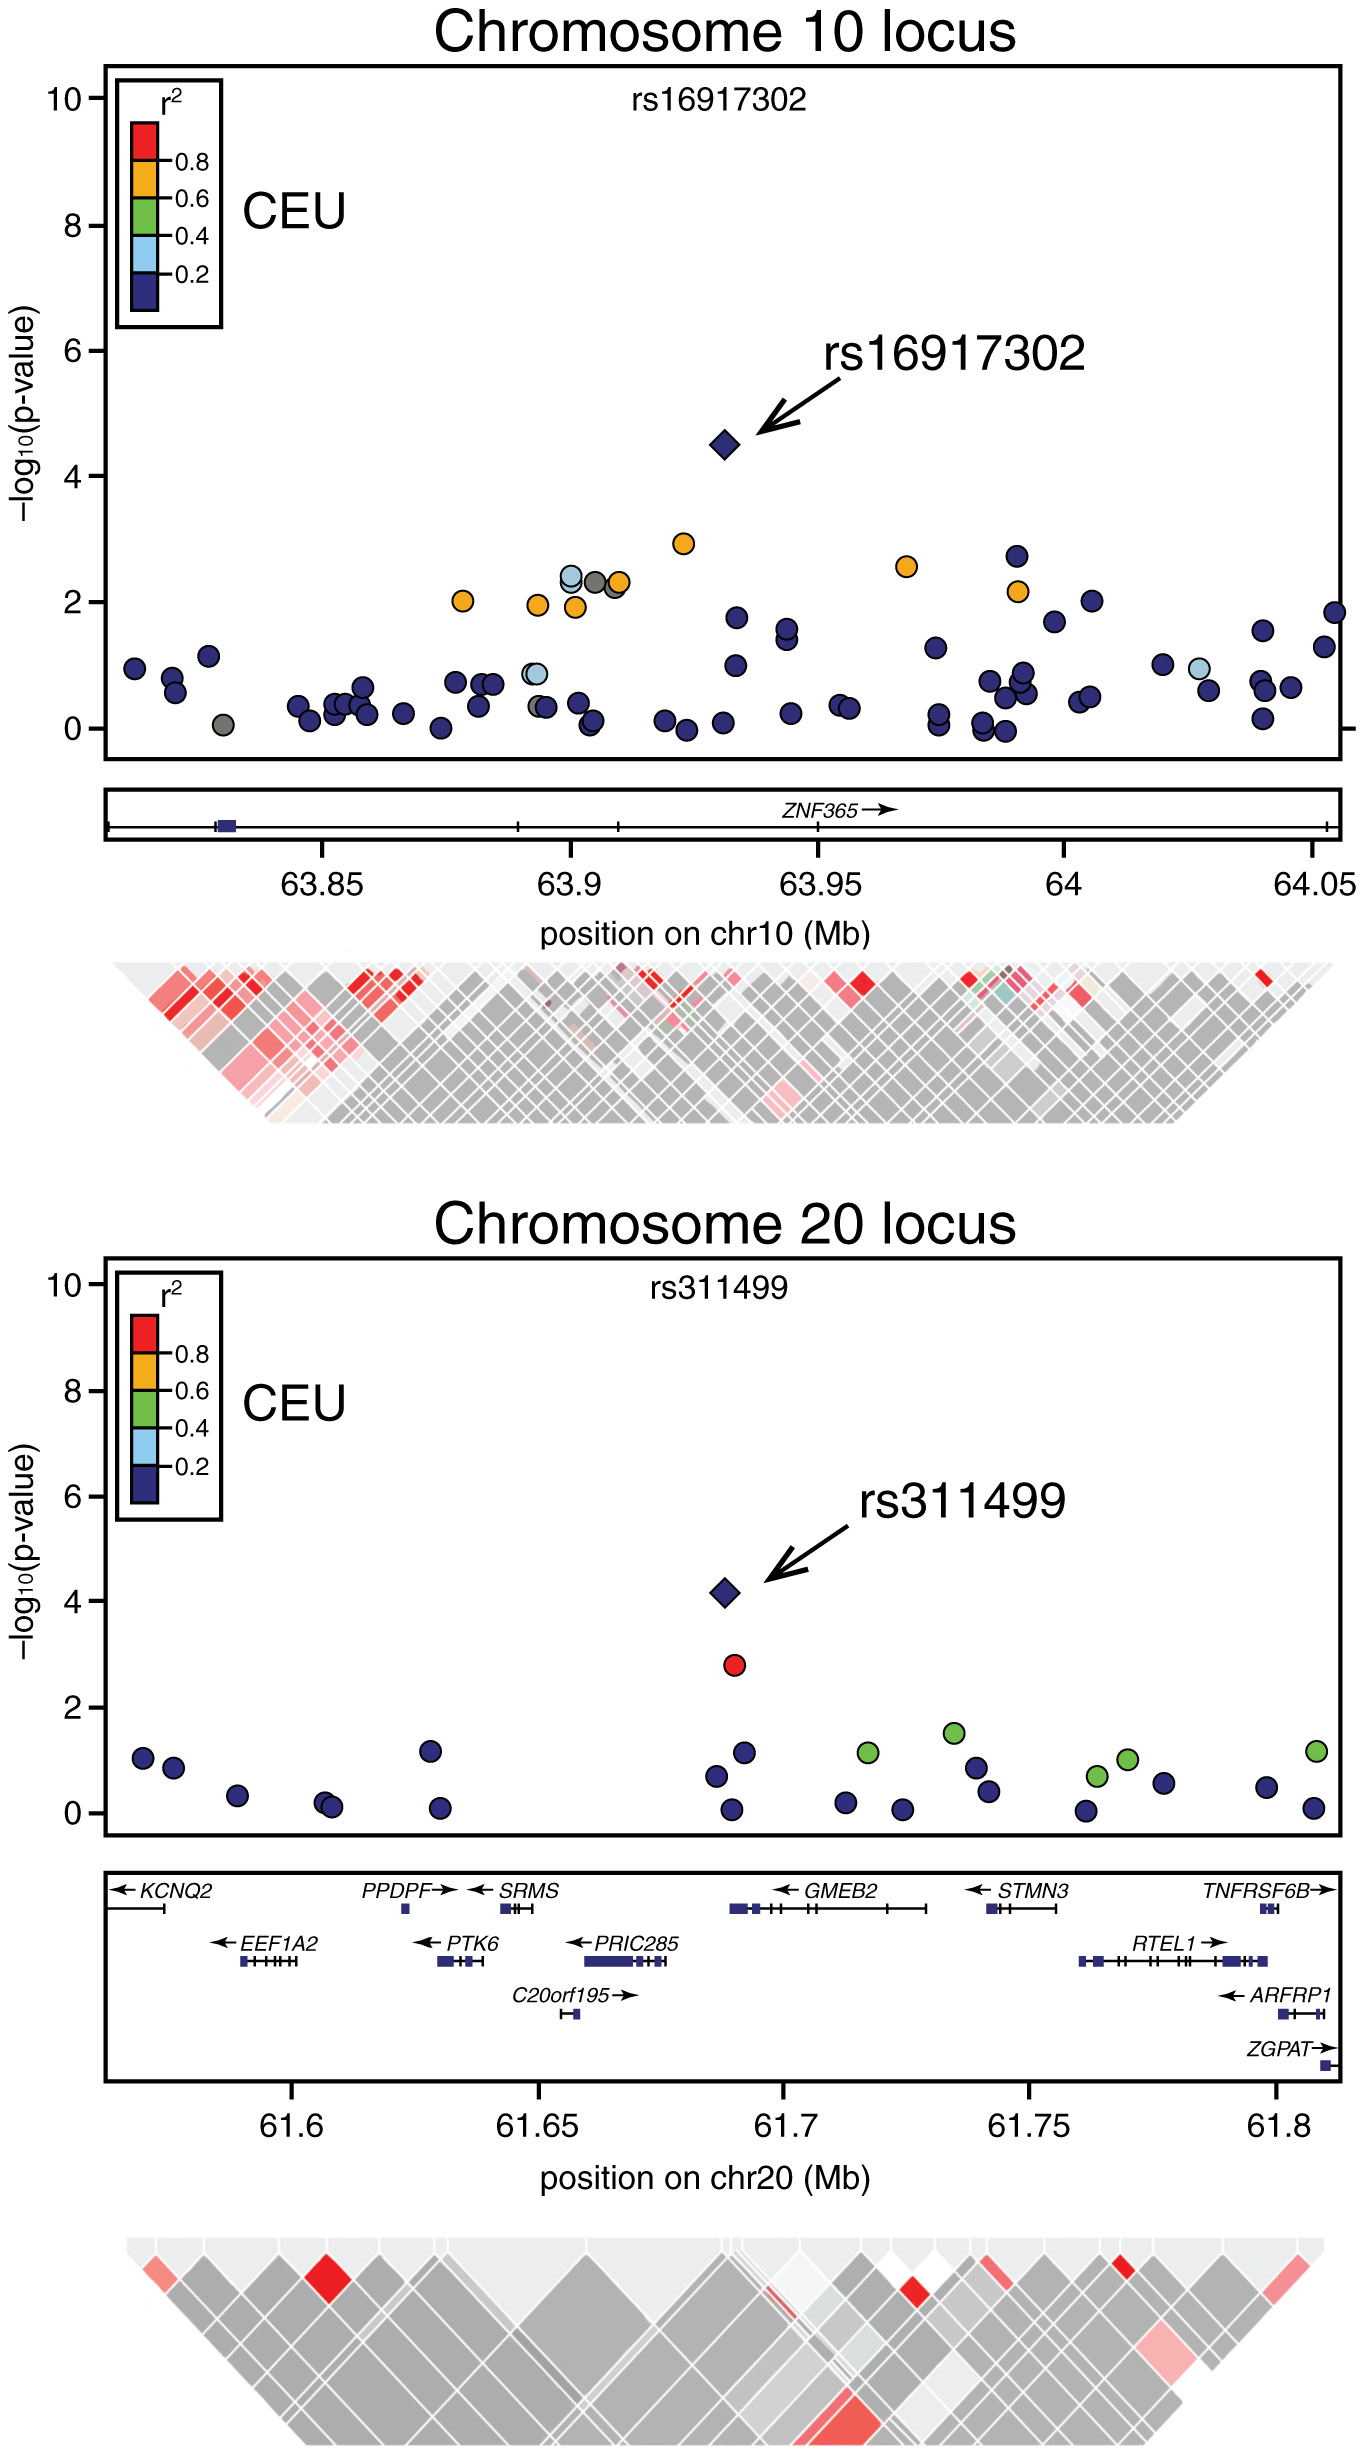 Association signals, genetic structure, and linkage disequilibrium of the novel modifier loci of <i>BRCA2</i> penetrance in the regions surrounding rs1691730 on chromosome 10 and rs311499 on chromosome 20.